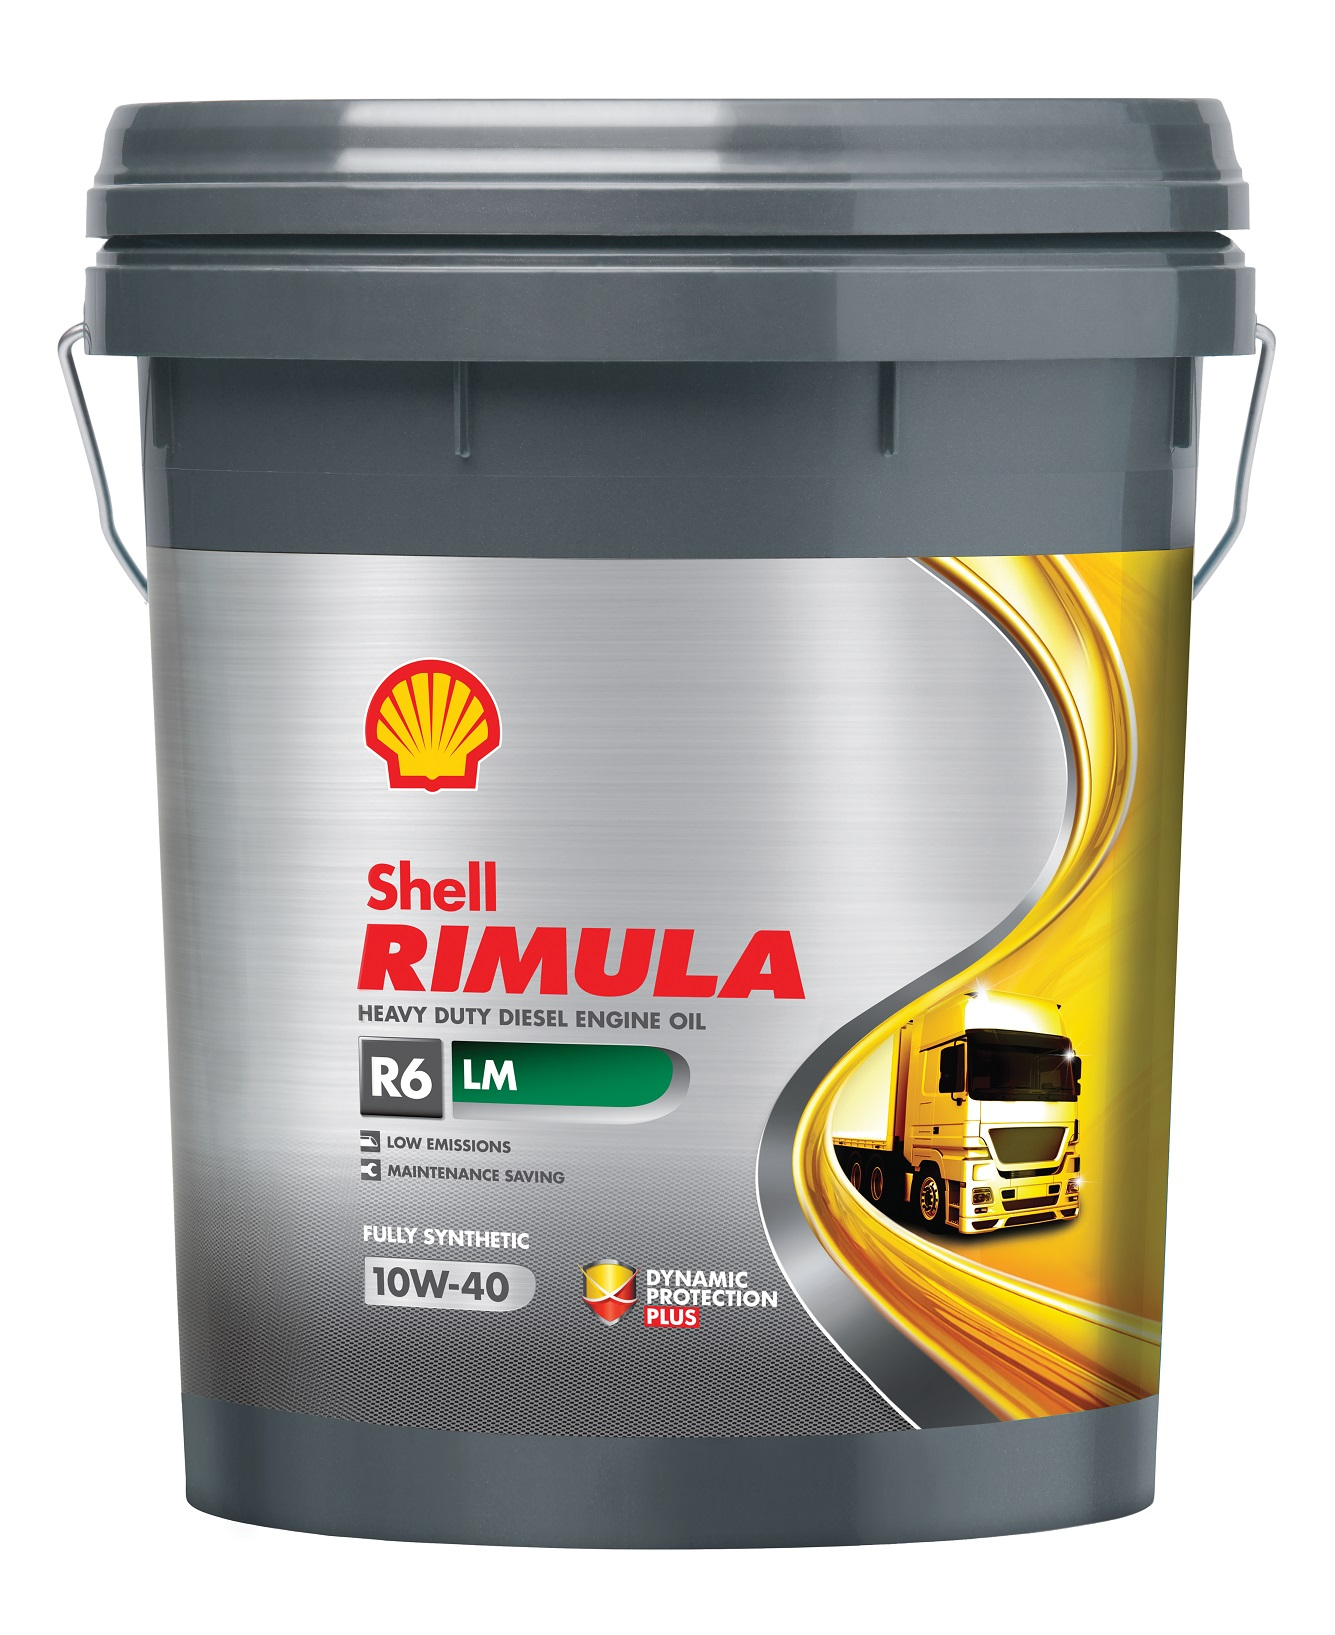 Shell Rimula R6 LM with API CK-4 specification